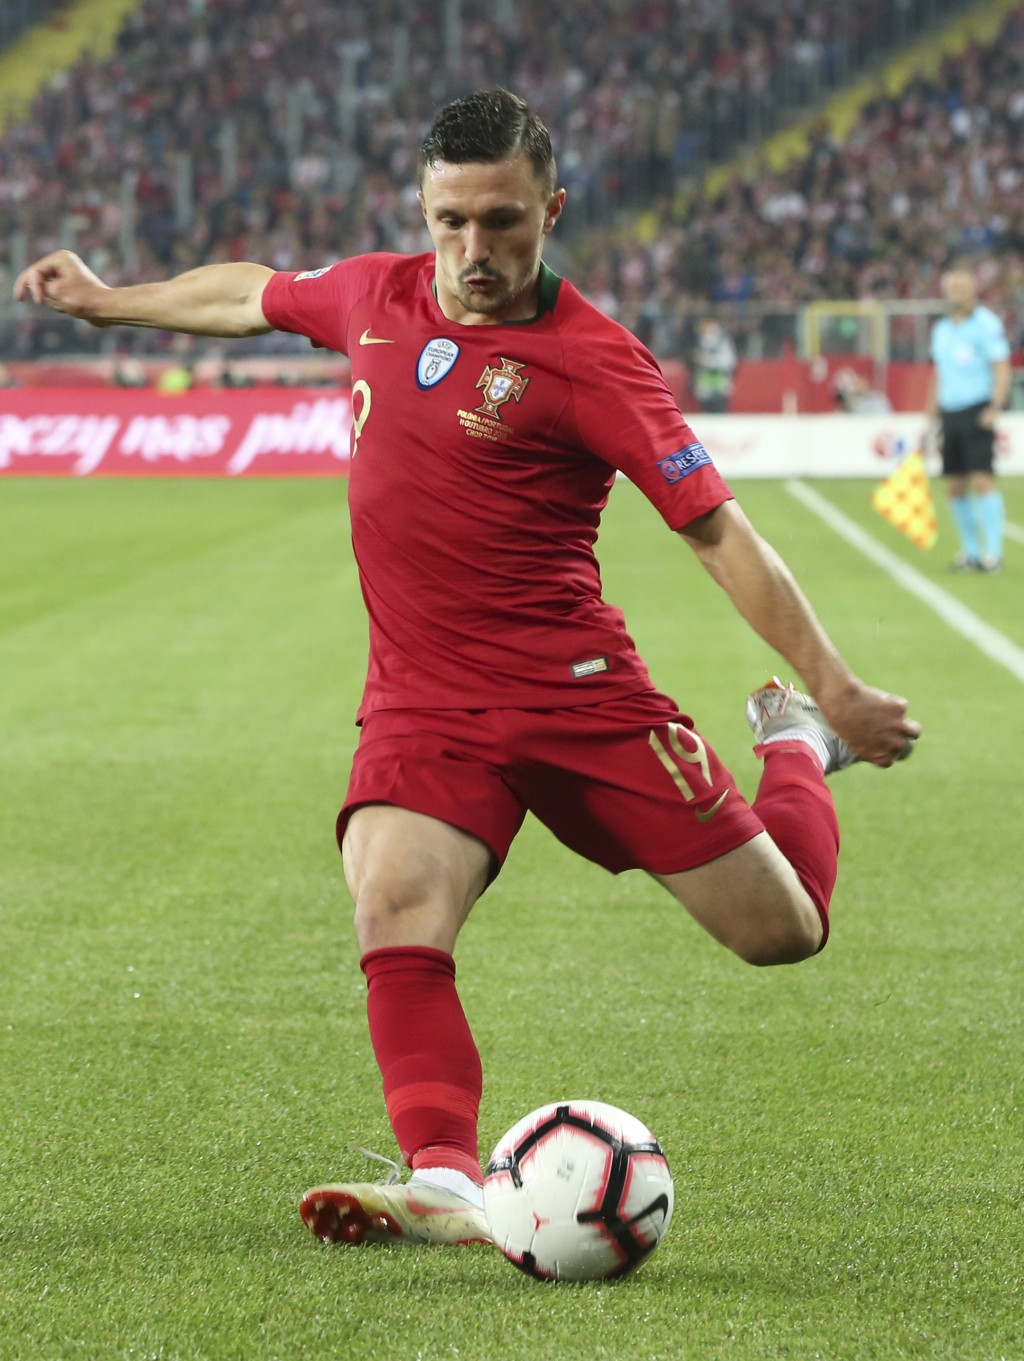 Portugal's Mario Rui passes the ball during the UEFA Nations League soccer match between Poland and Portugal at the Silesian Stadium Chorzow, Poland,